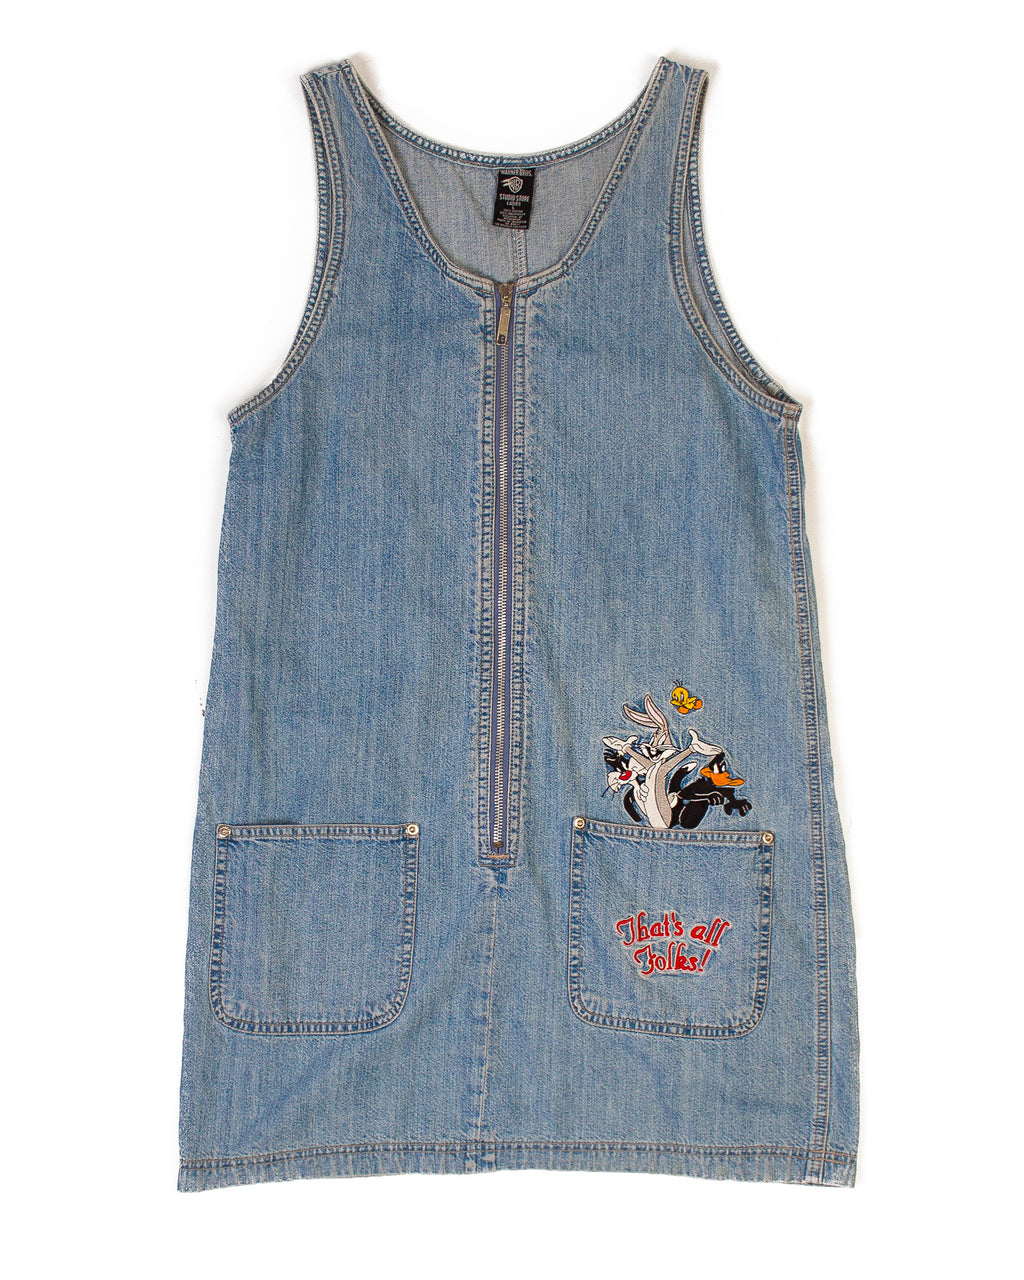 WARNER BROS DENIM PINAFORE